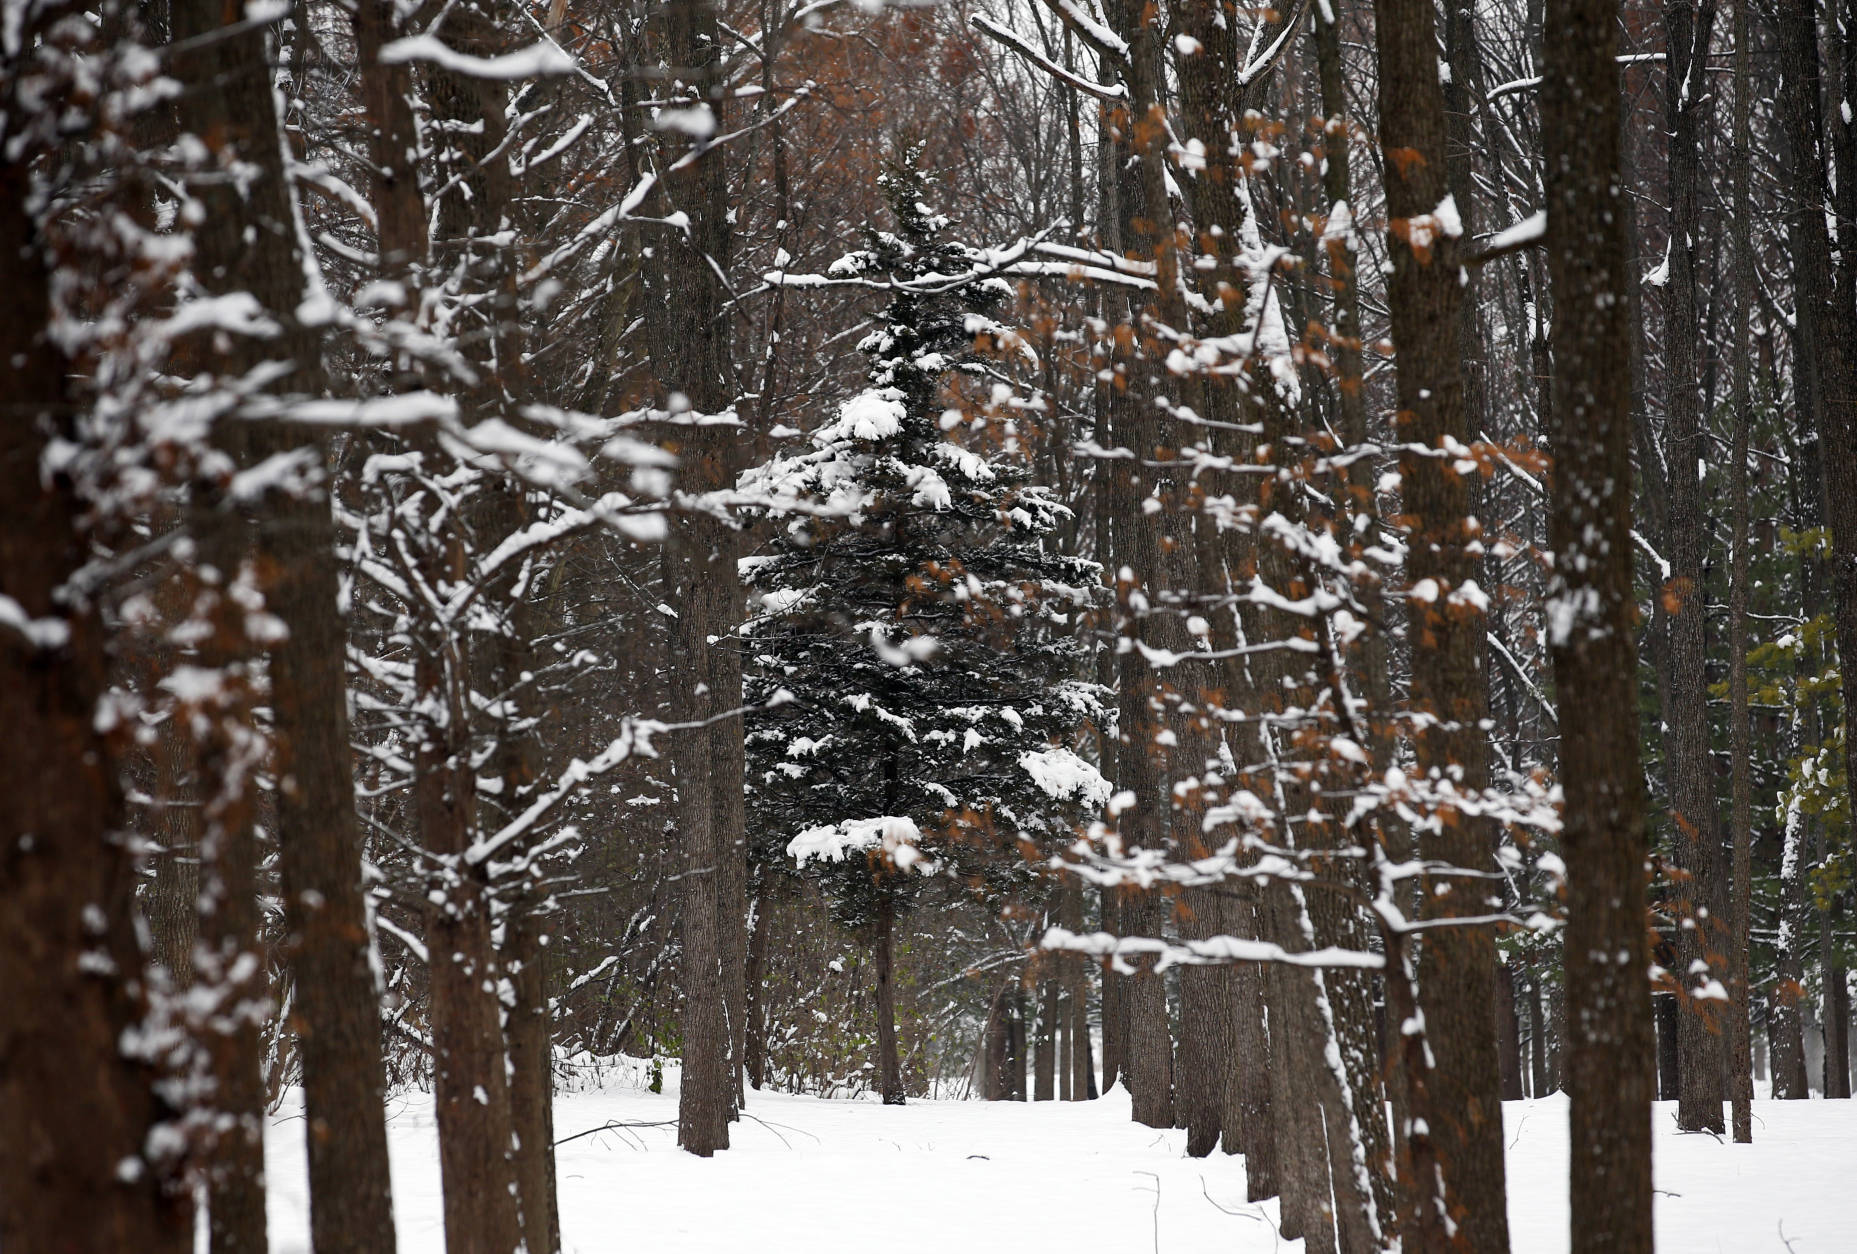 Trees are covered by snow in the Walnut Woods park on Sunday, Dec. 11, 2016, in Prospect Heights, Ill. Snow is expected to continue through late tonight, possibly bringing several more inches. (AP Photo/Nam Y. Huh)